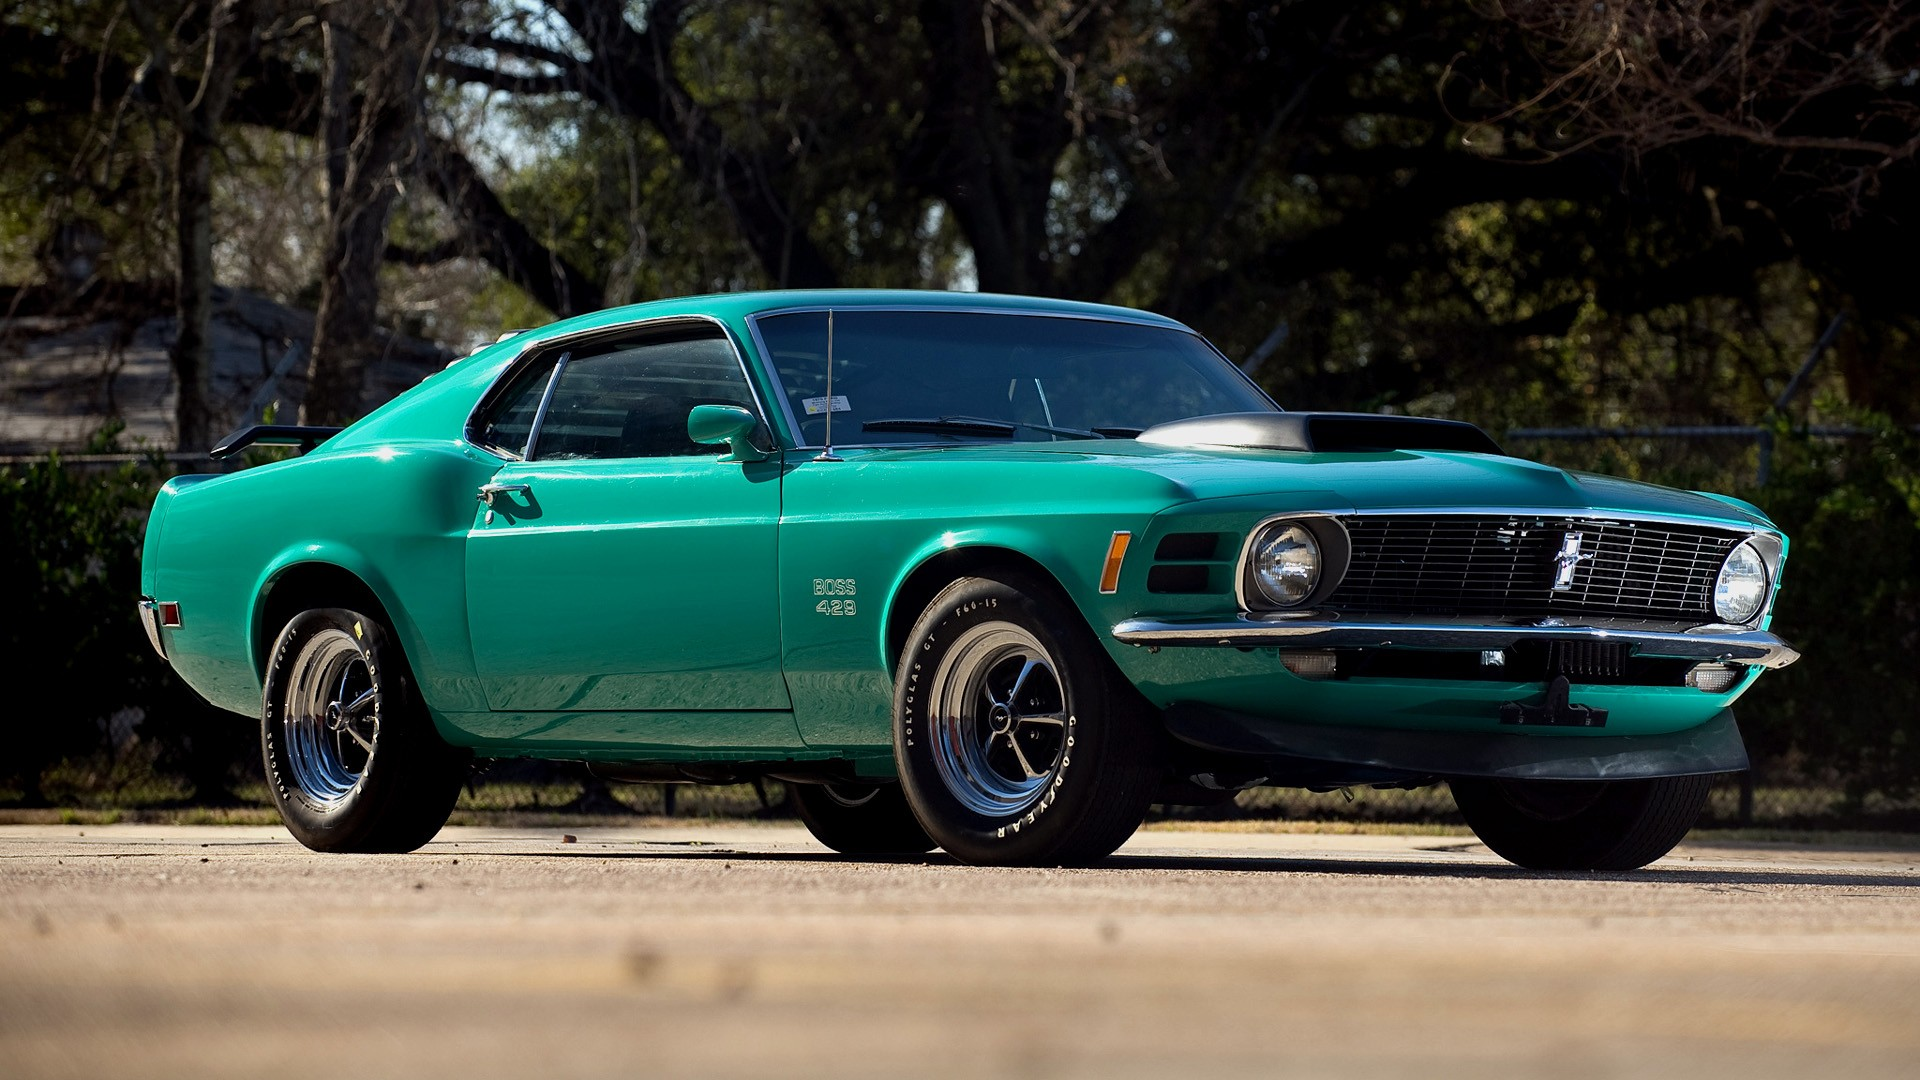 cars, muscle cars, boss, vehicles, Ford Mustang, classic cars - Free ...